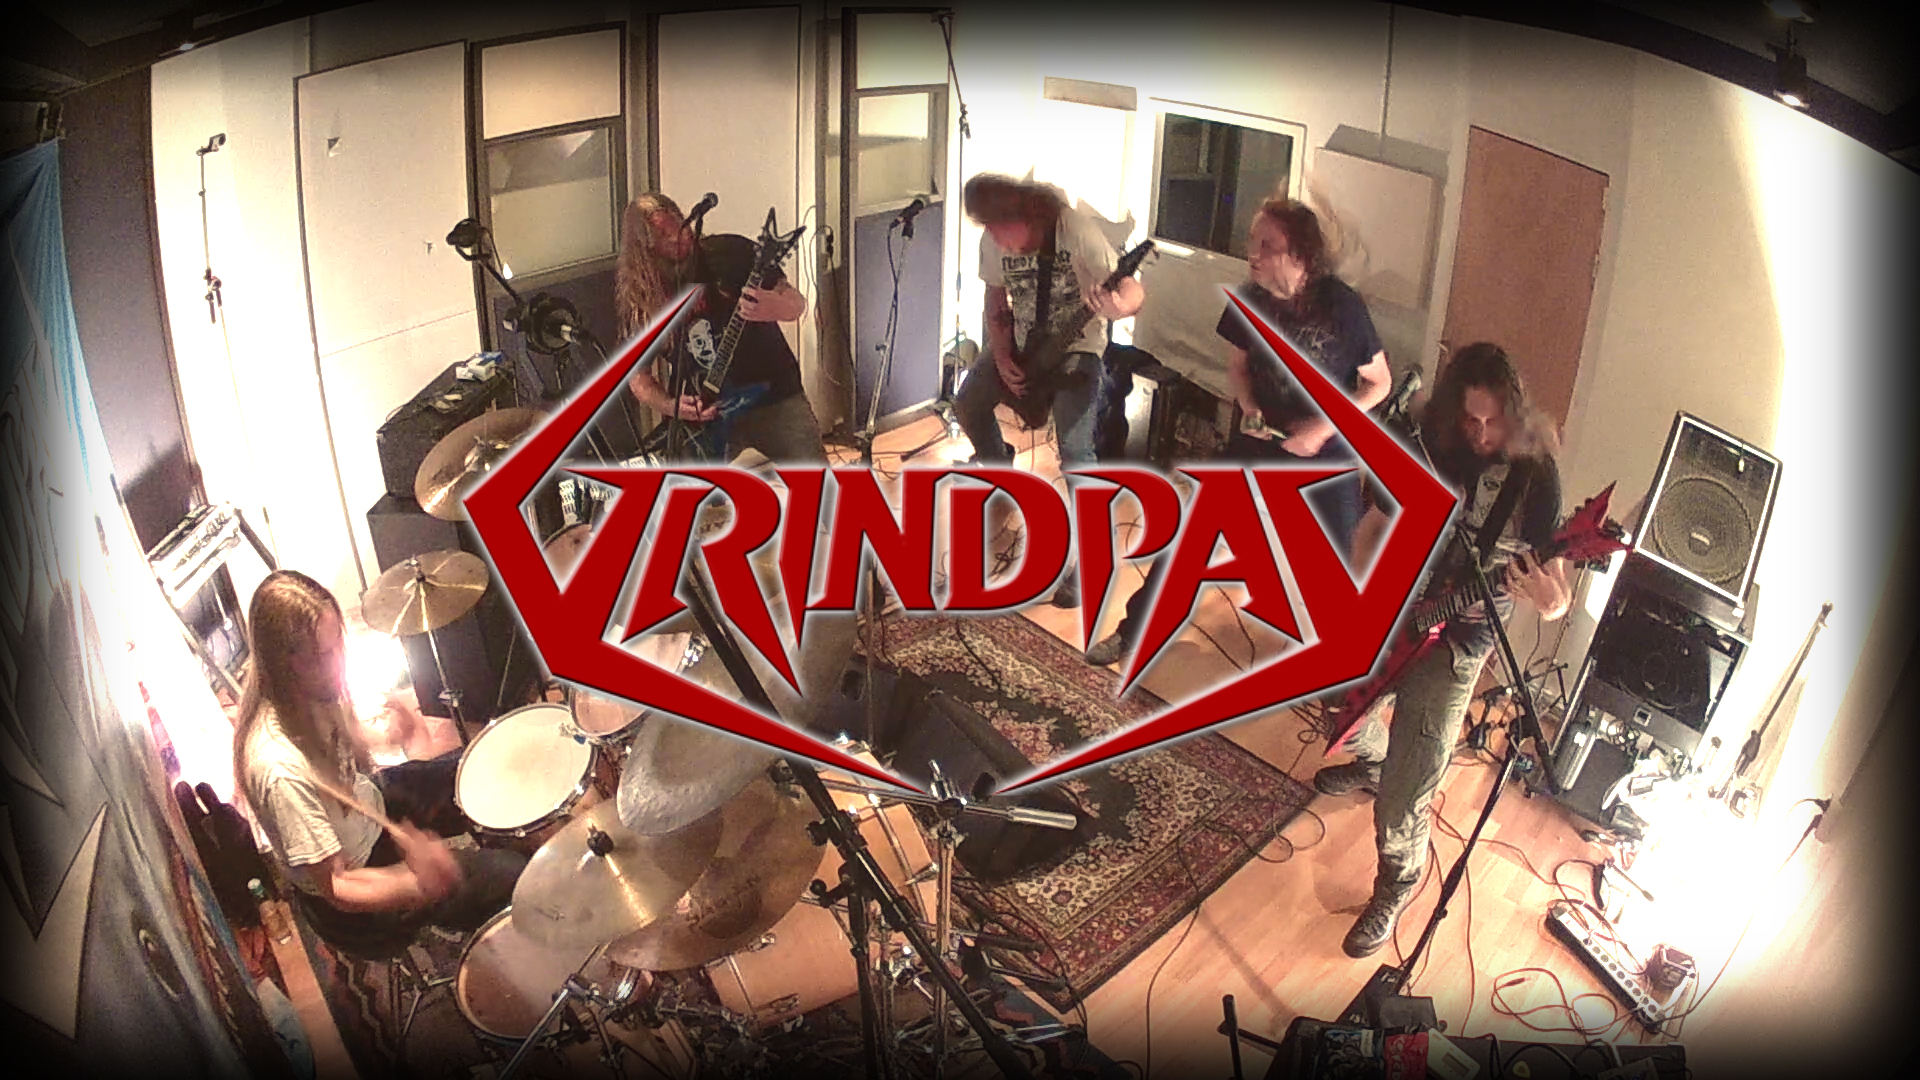 Grindpad – Trash / Powermetal – The Netherlands